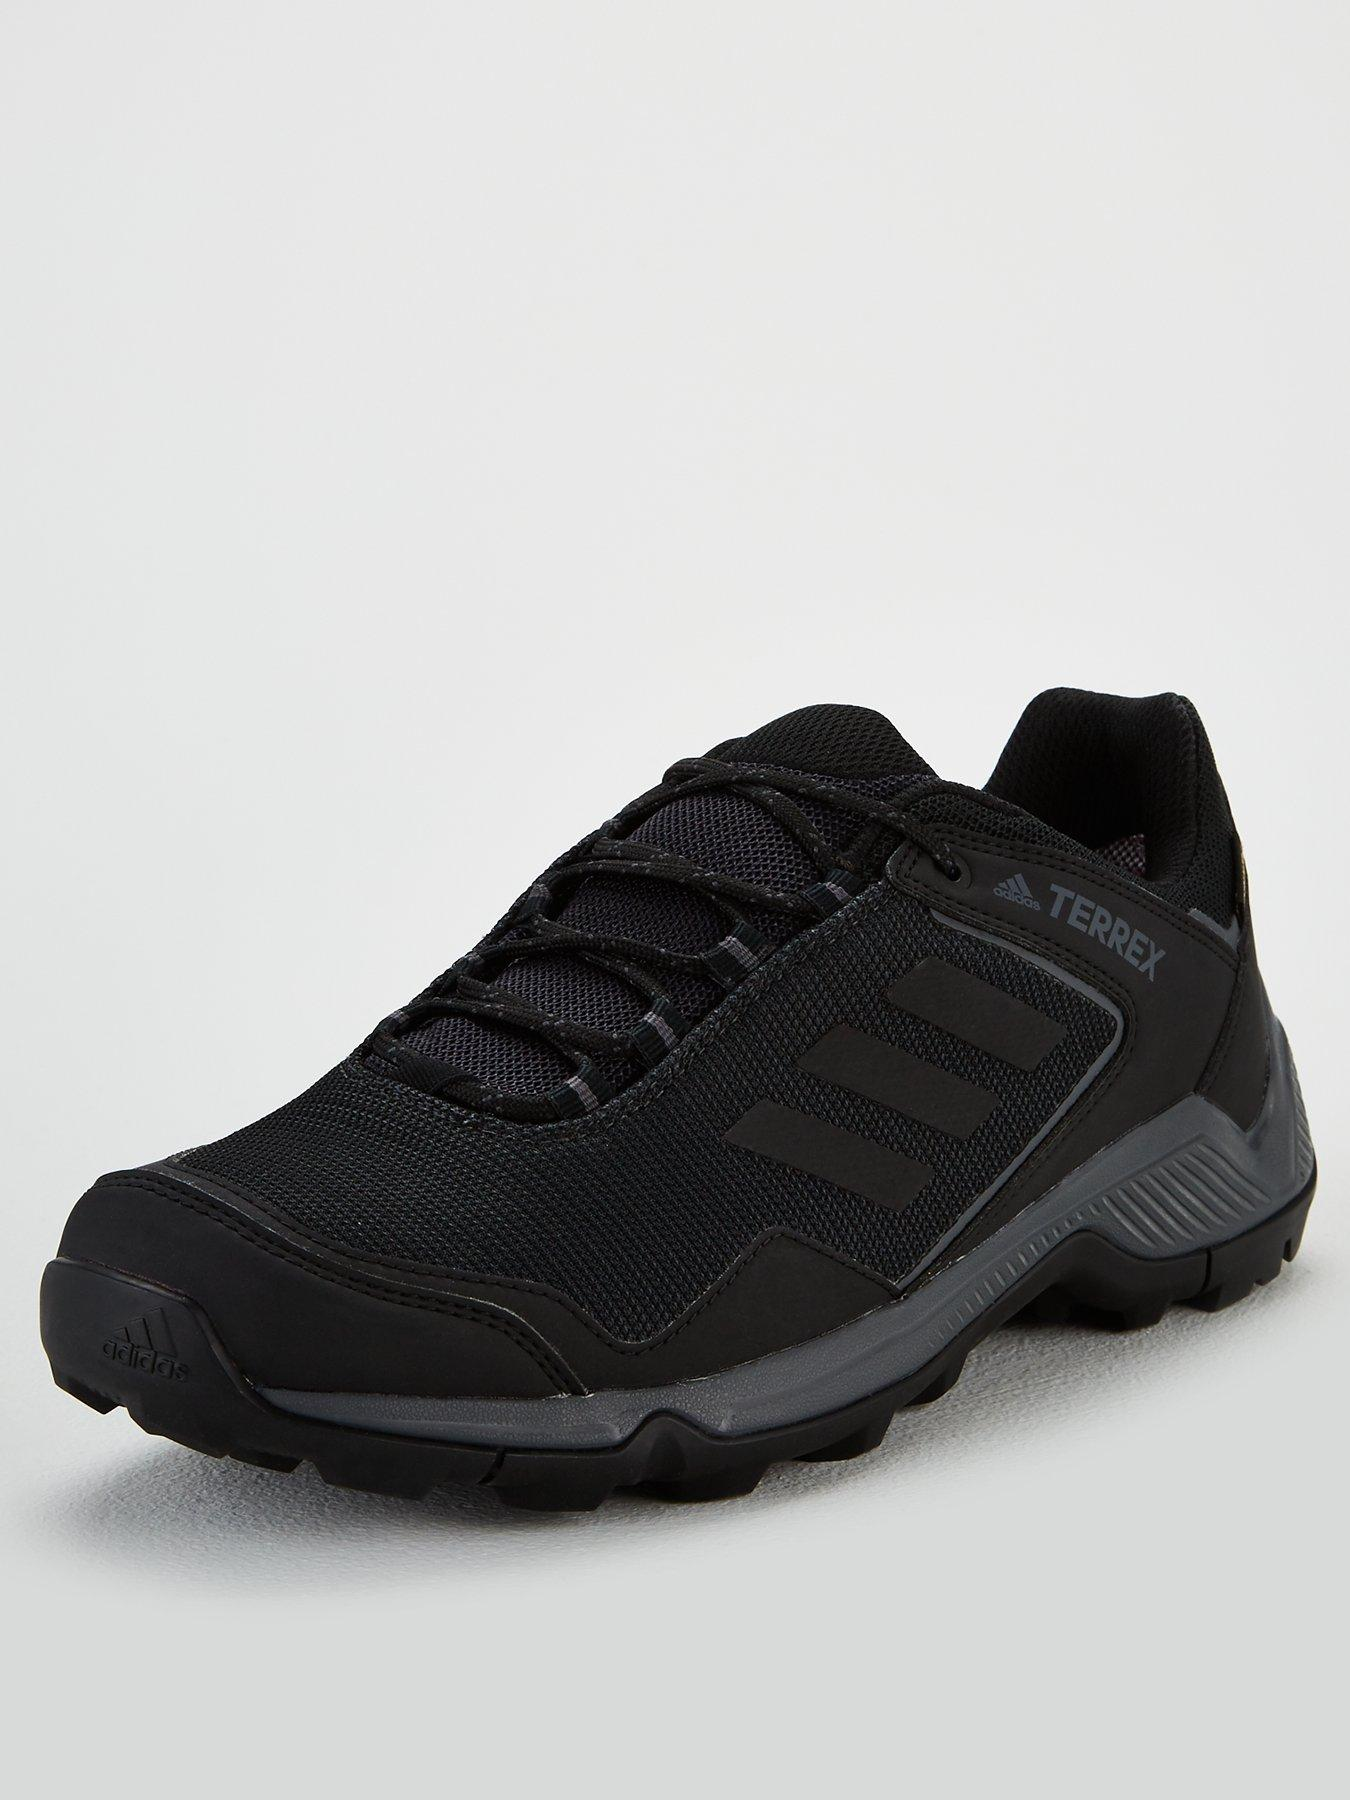 Adidas | Shoes & boots | Men | littlewoodsireland.ie